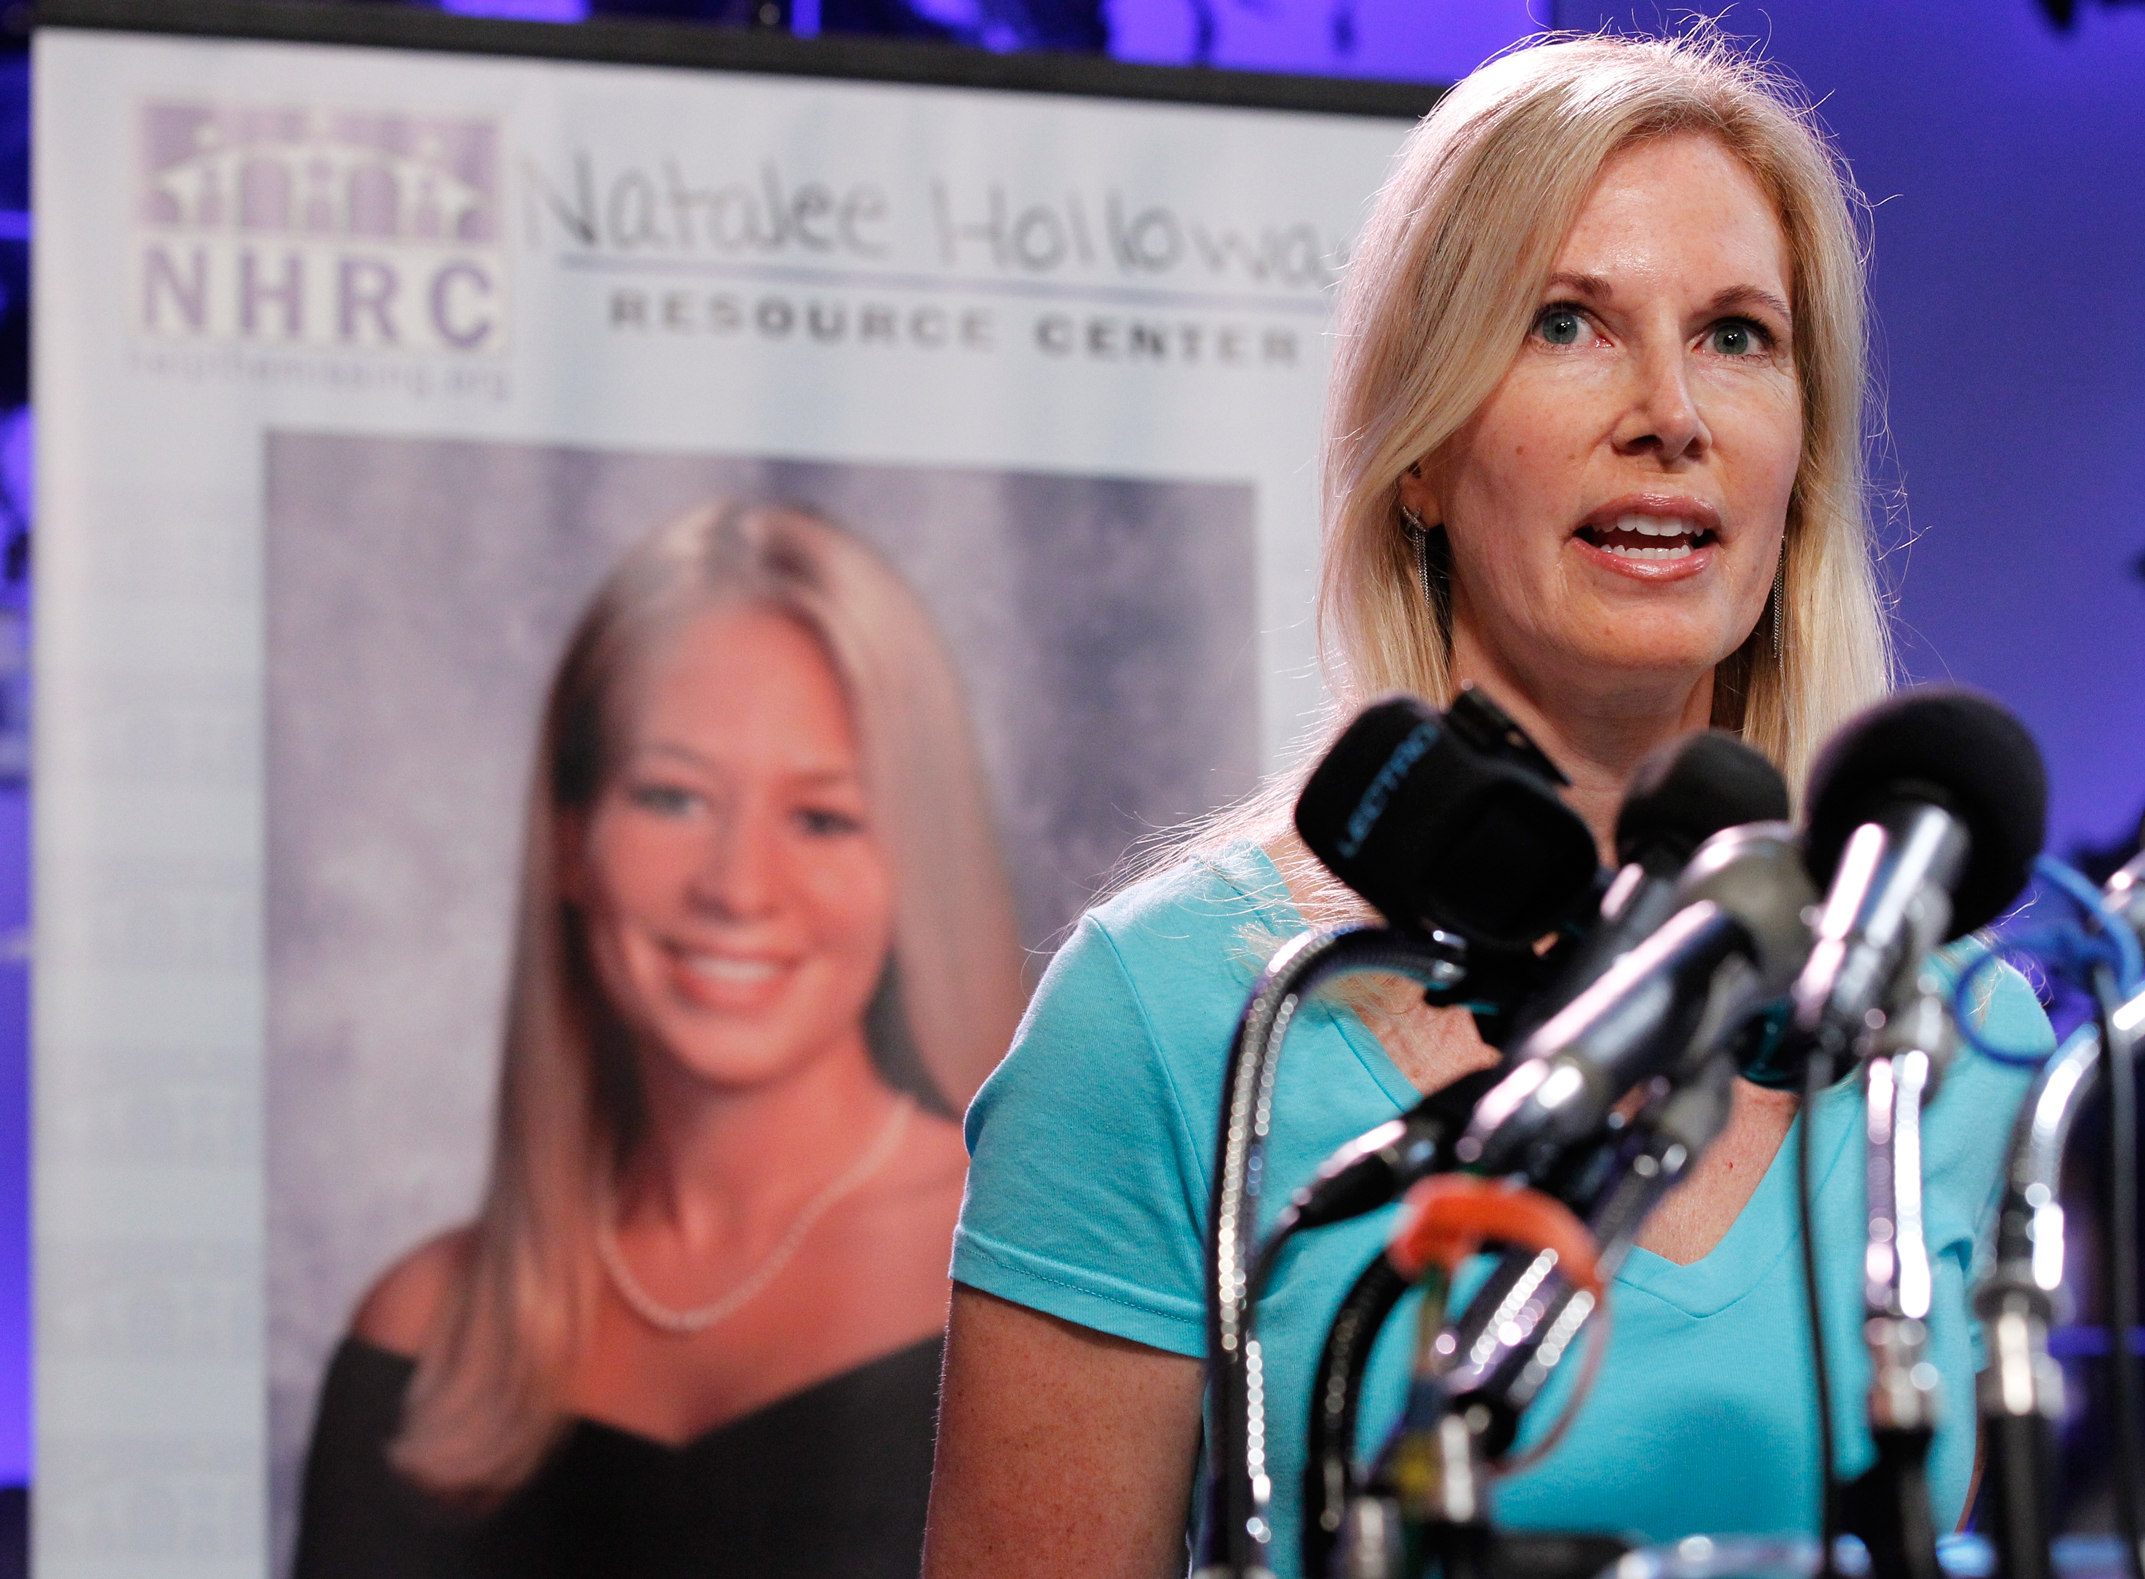 Natalee Holloway's mom sues TV network for $35 million